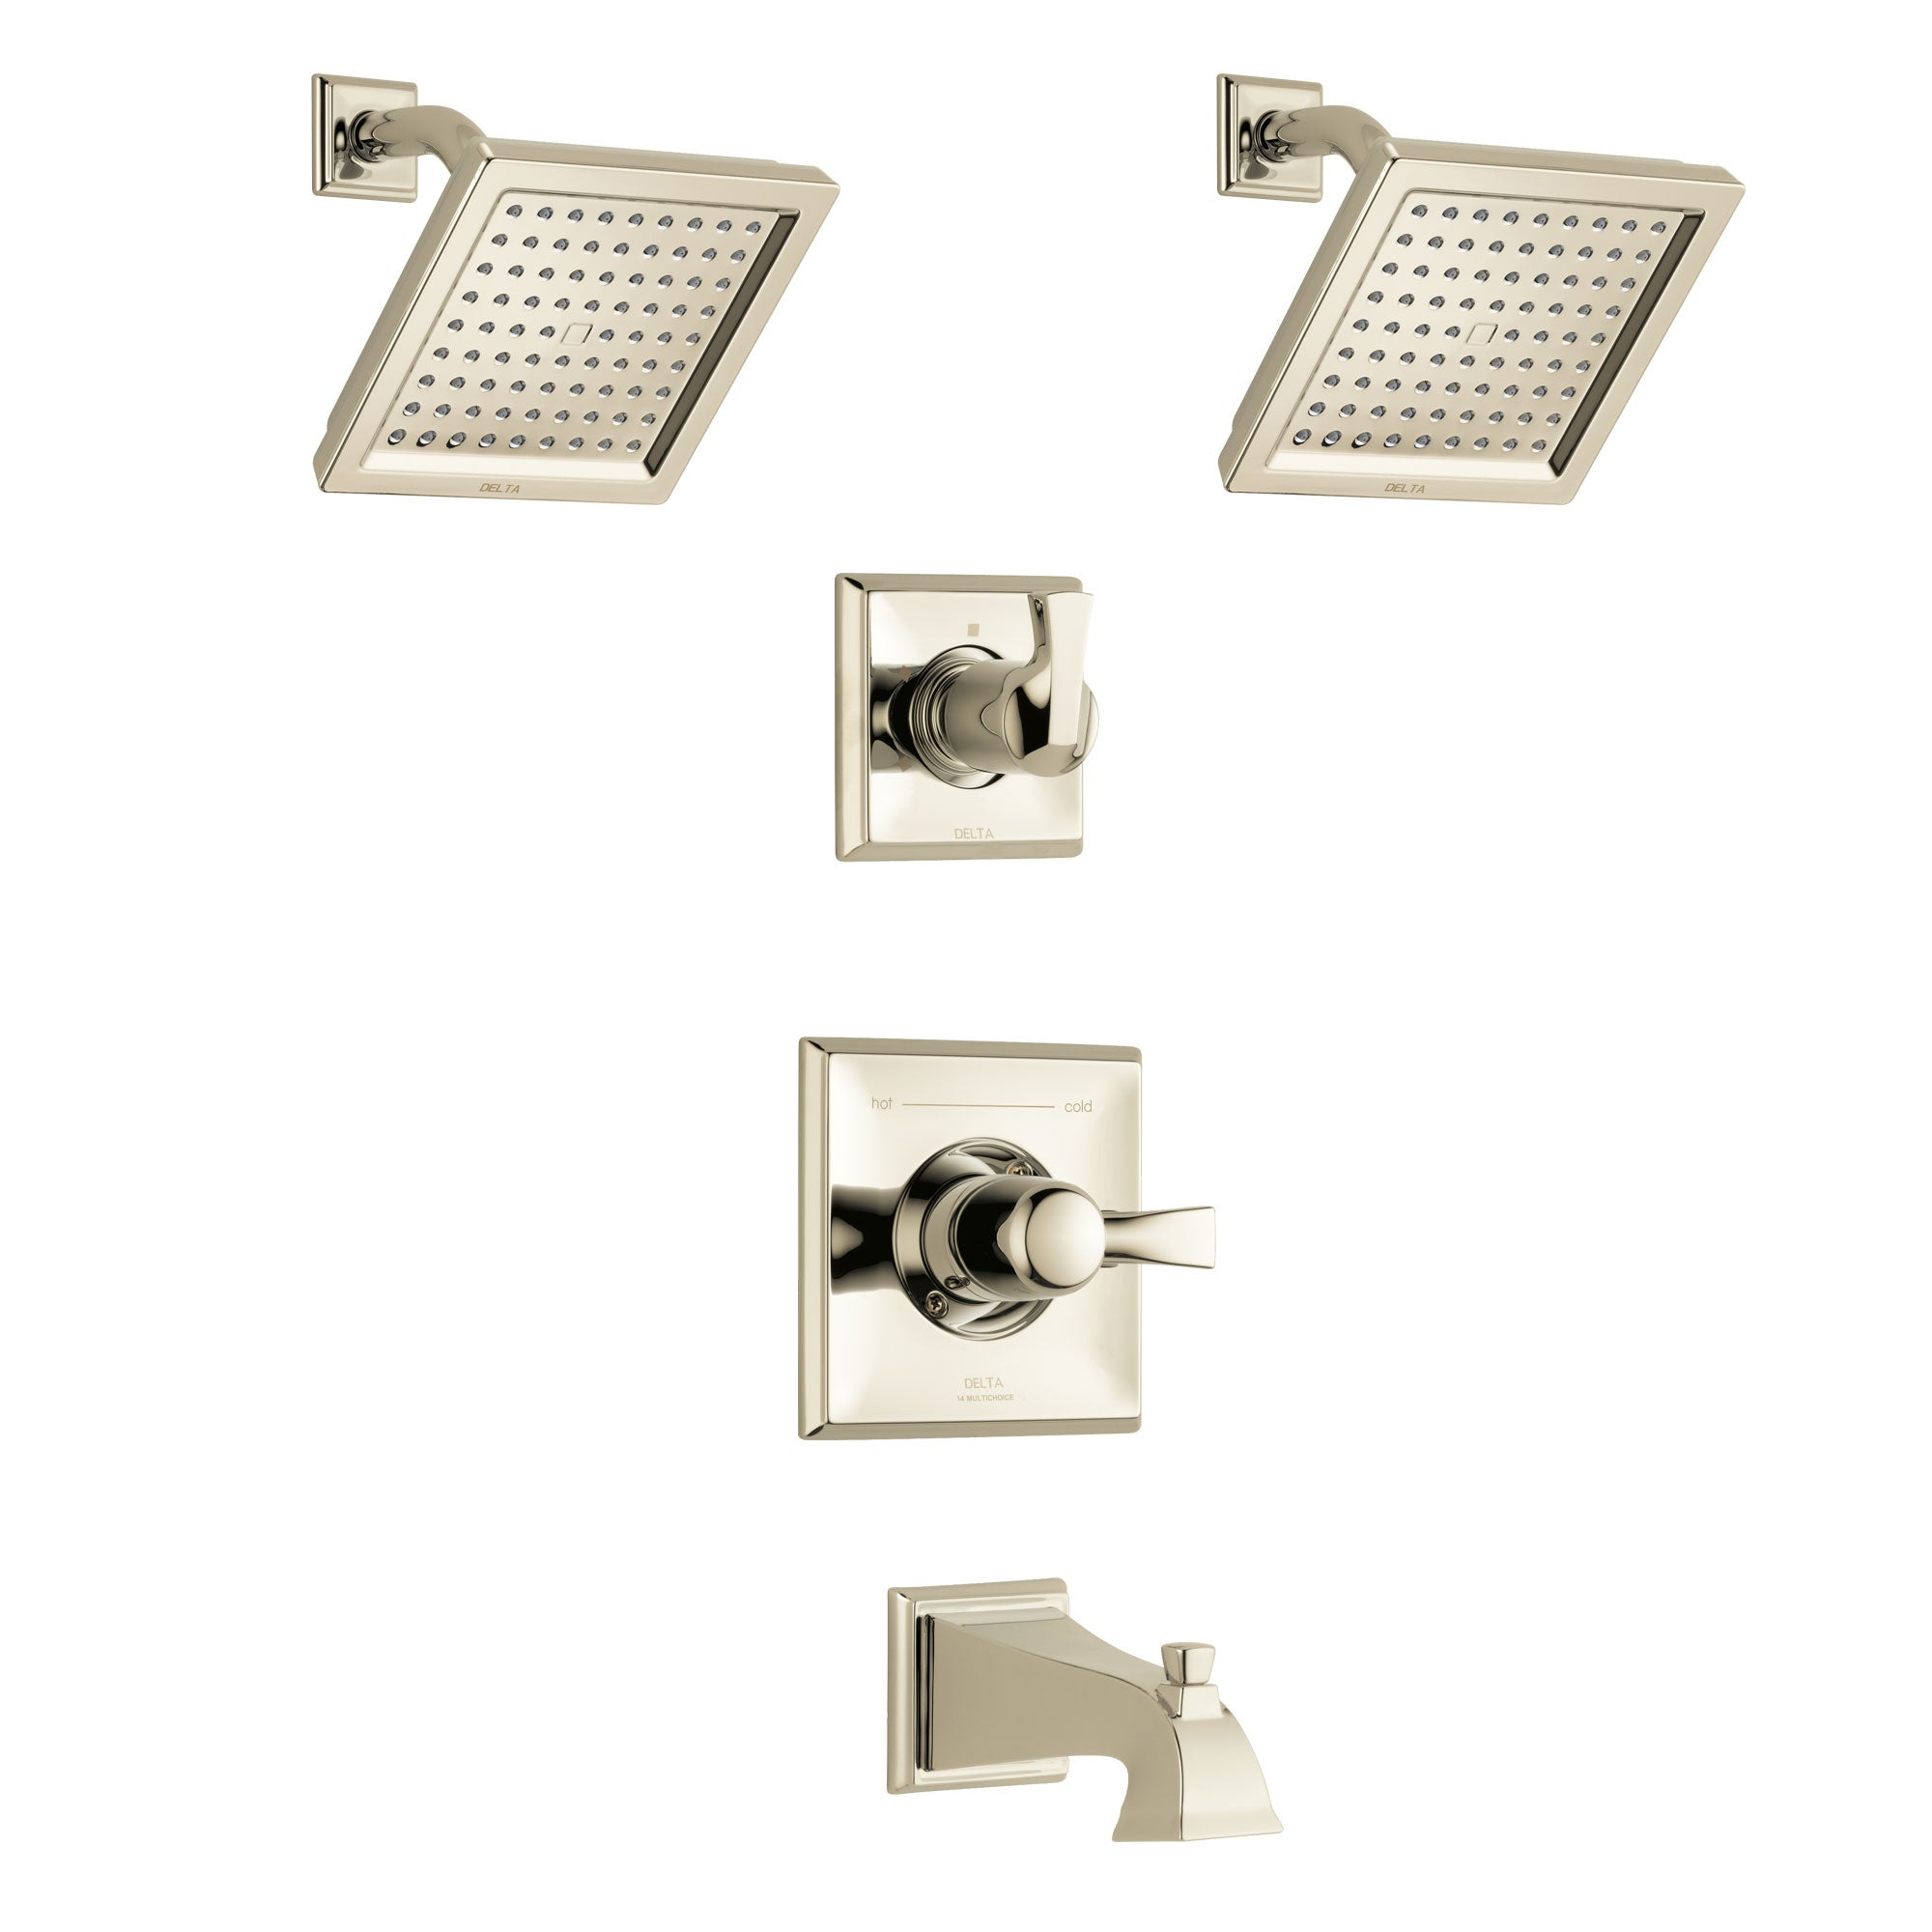 Delta Dryden Polished Nickel Finish Tub and Shower System with Control Handle, 3-Setting Diverter, 2 Showerheads SS144511PN4